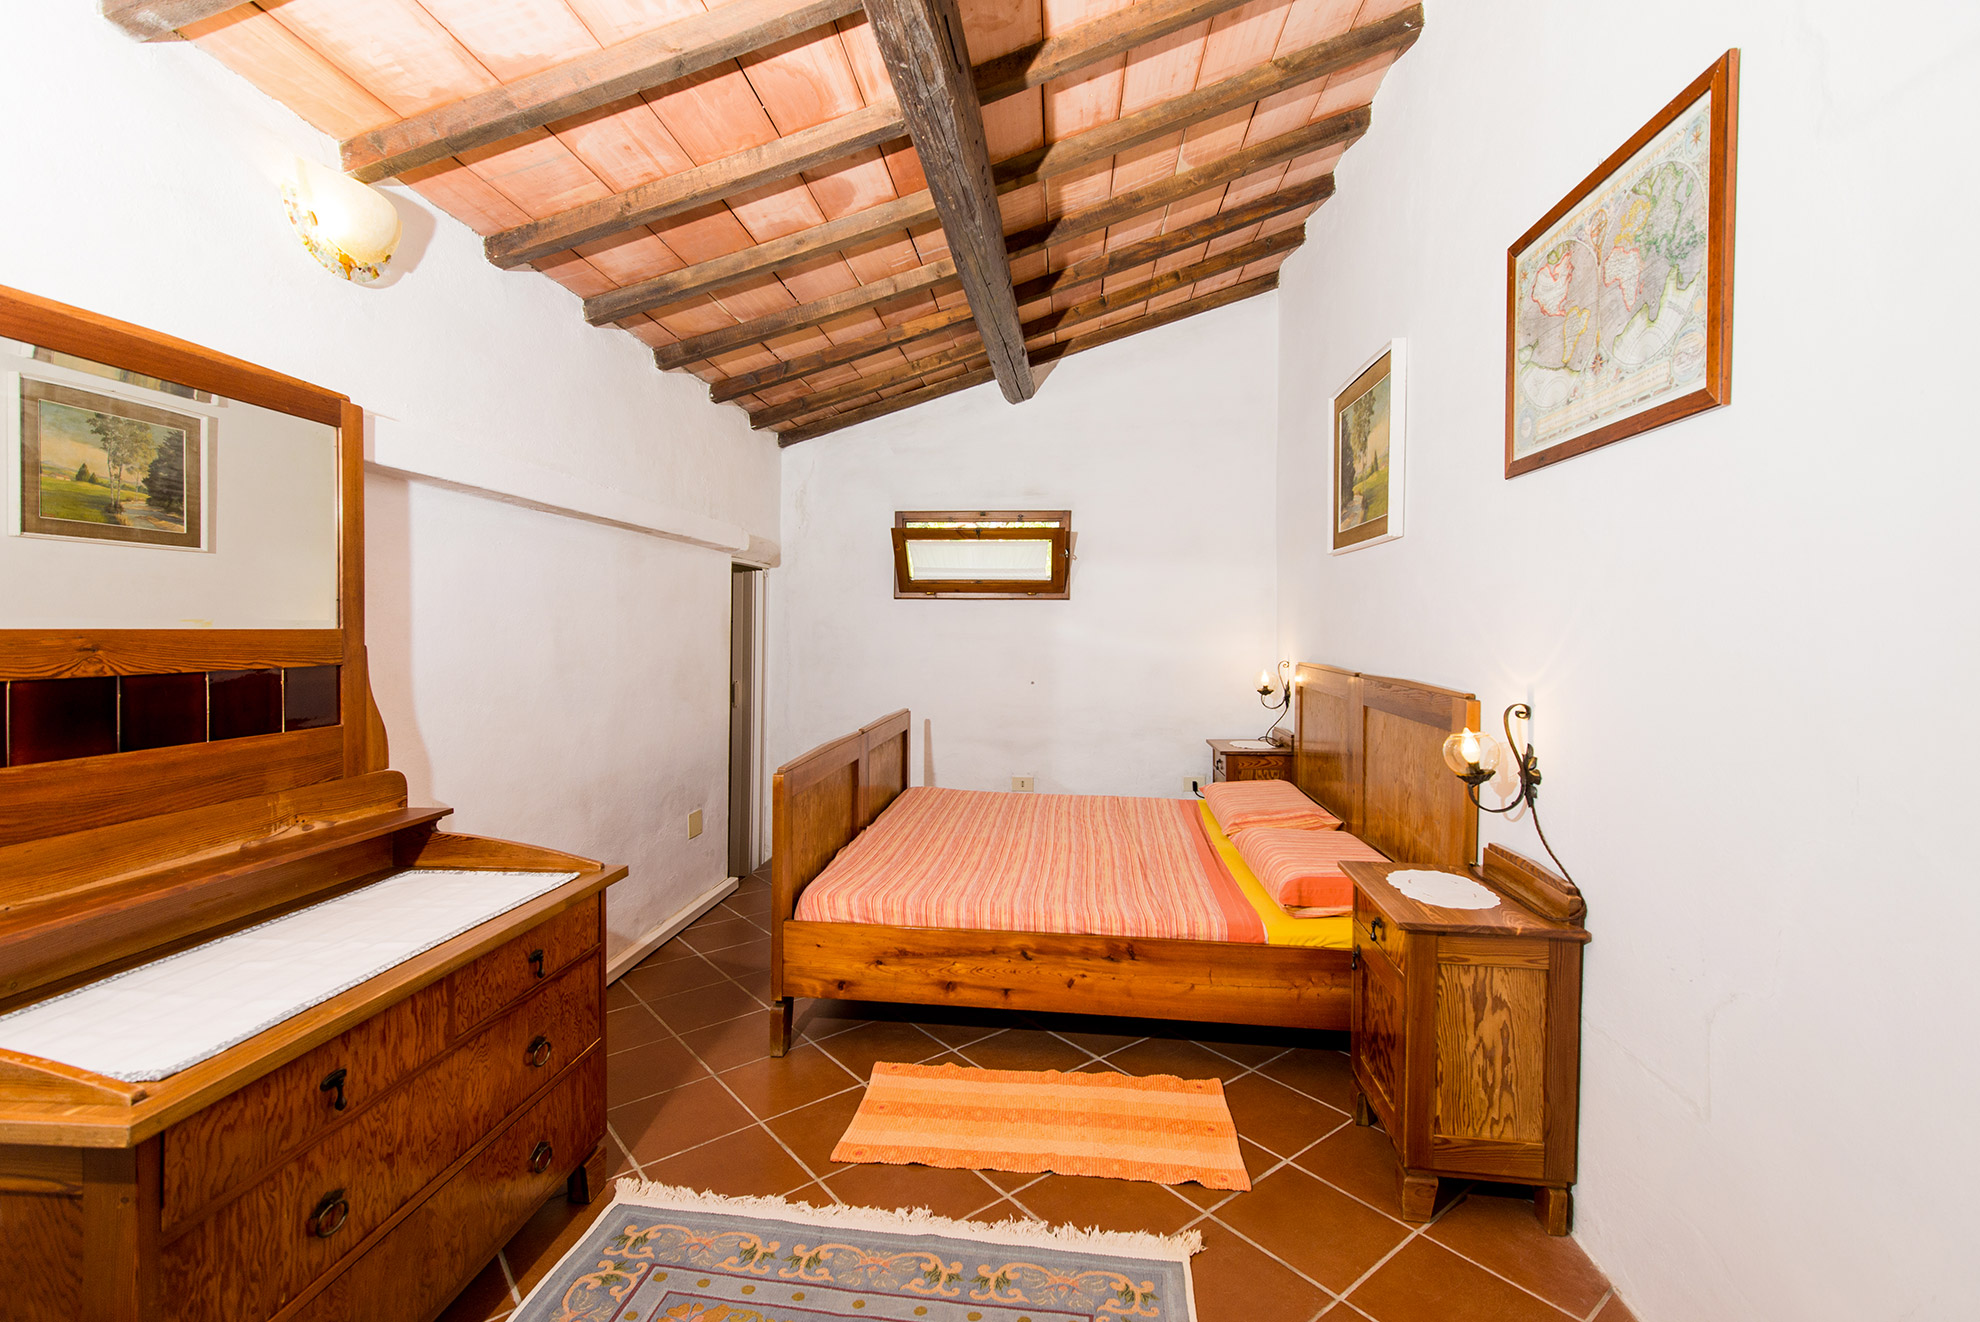 Ferienhaus Suvereto Casetta Media 4